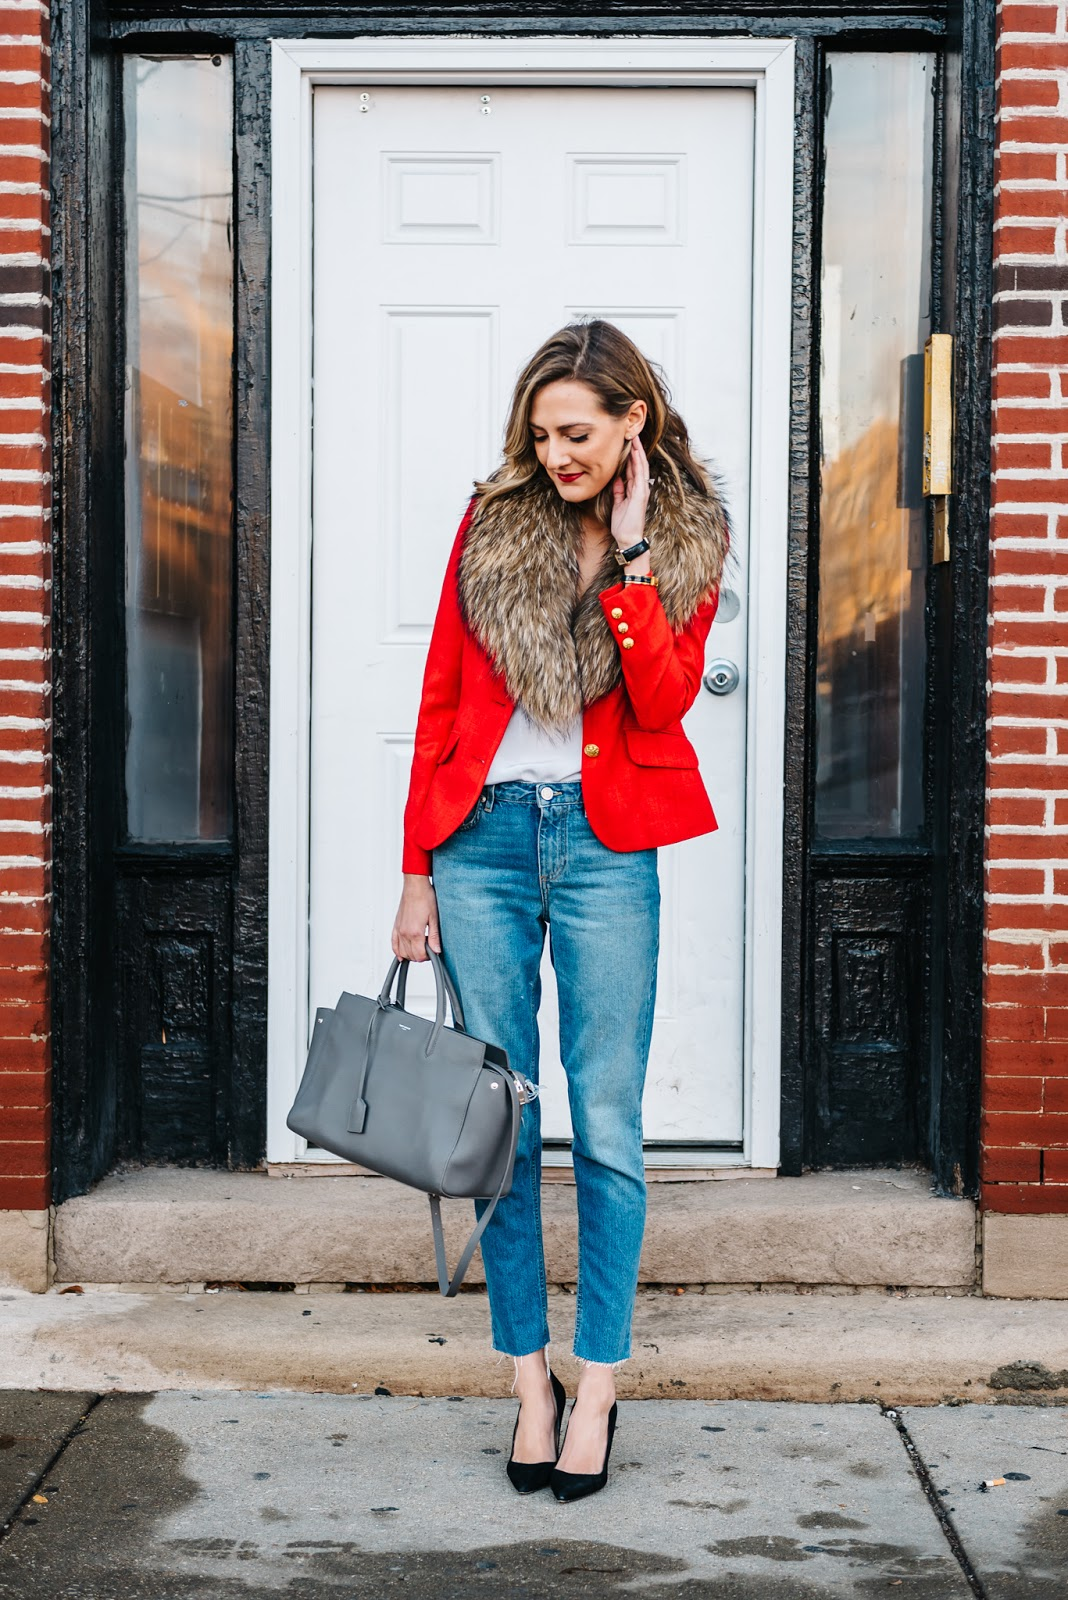 blazer with fur outfit